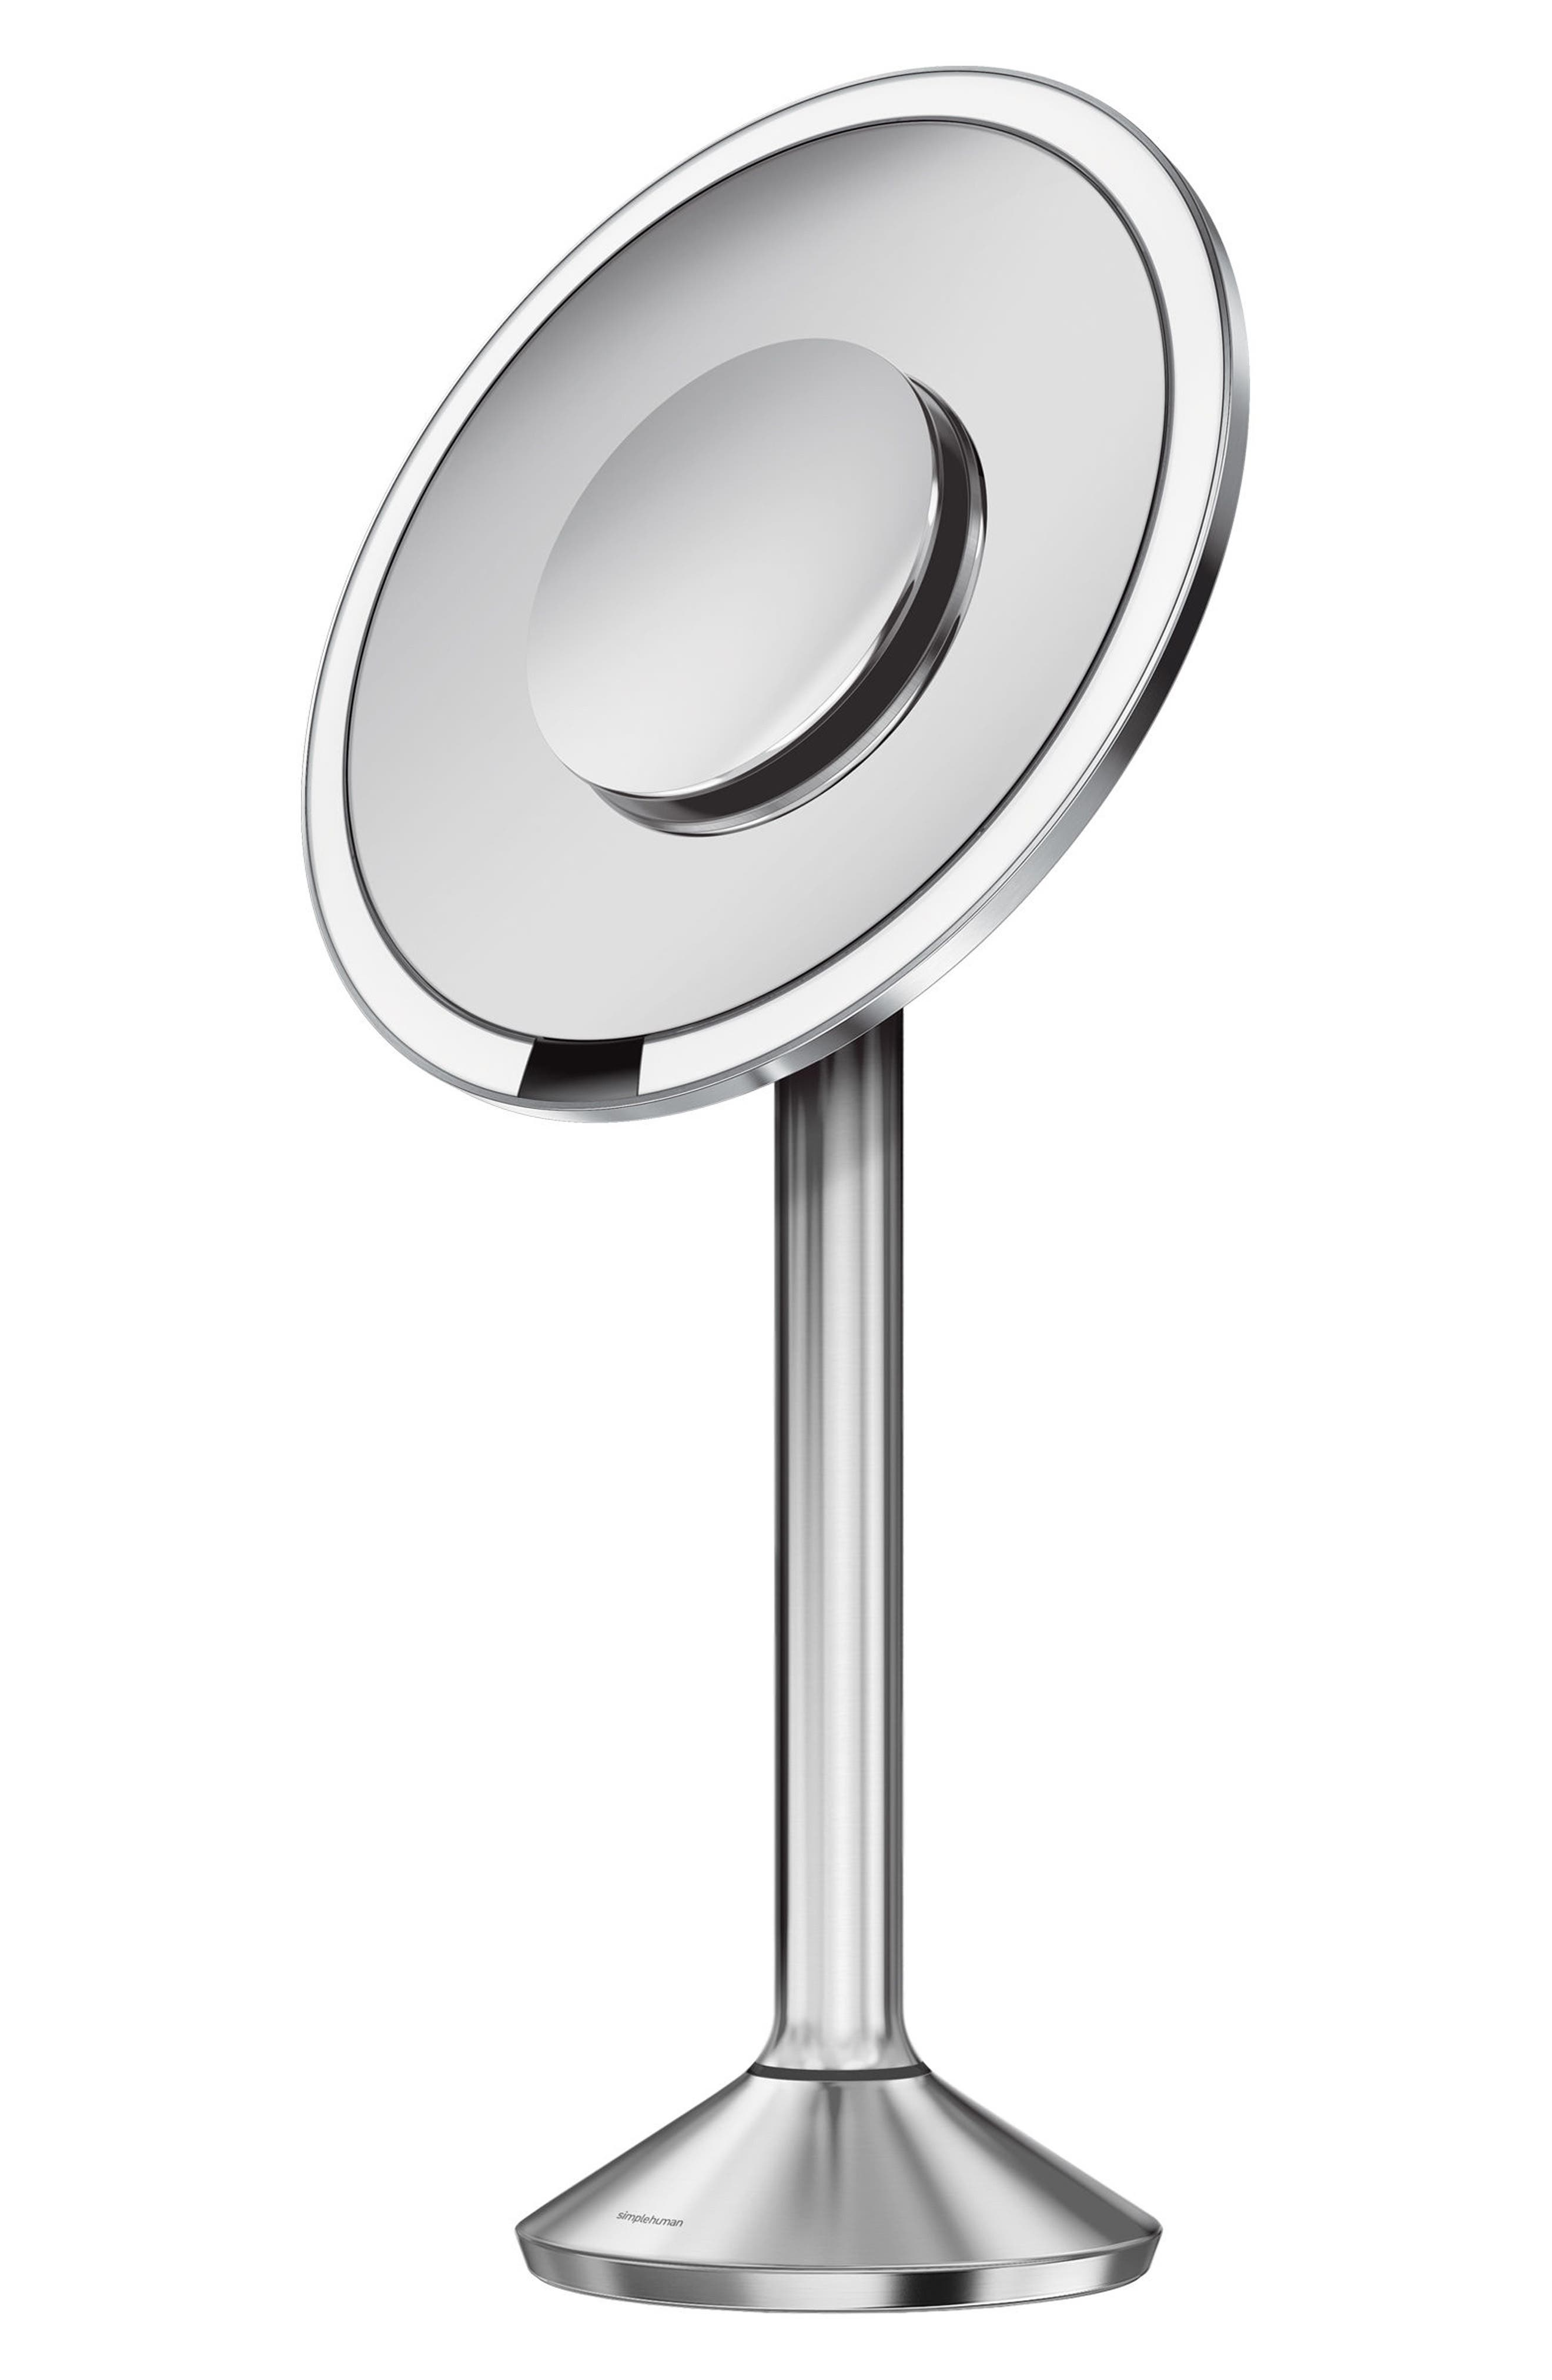 Round Sensor Mirror Pro,                         Main,                         color, Stainless Steel